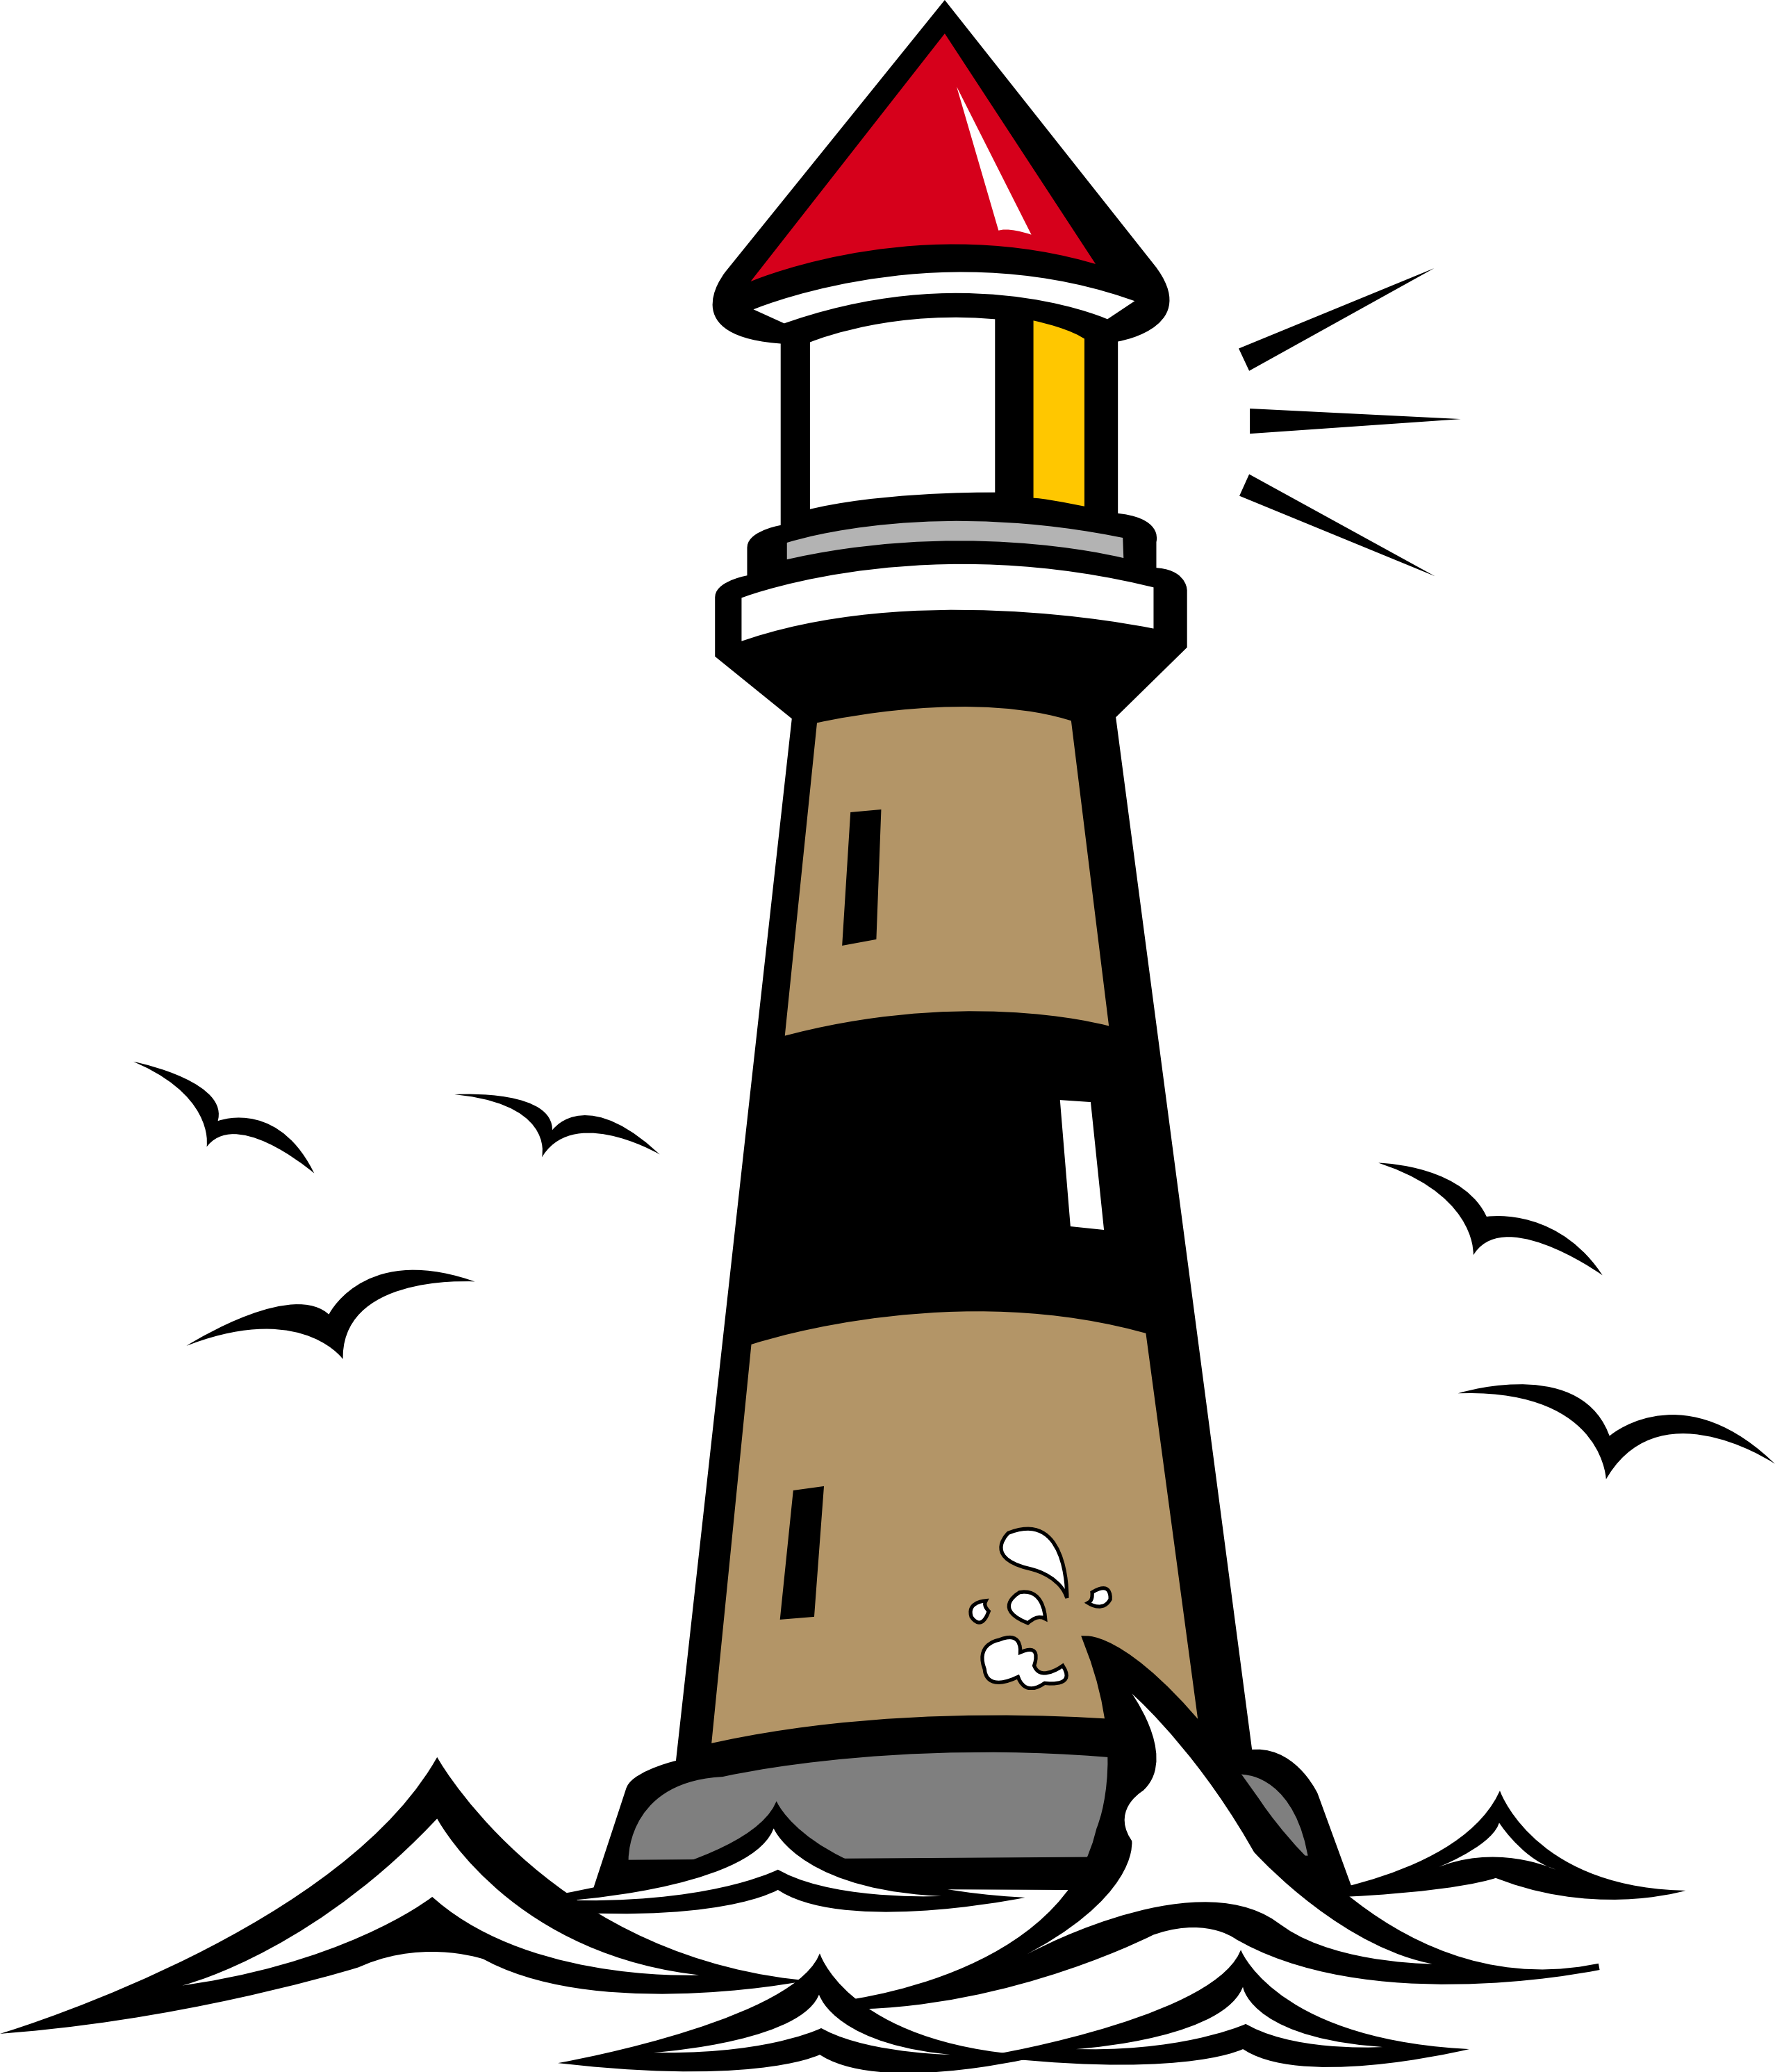 Lighthouse hanslodge cliparts. Library clipart vector